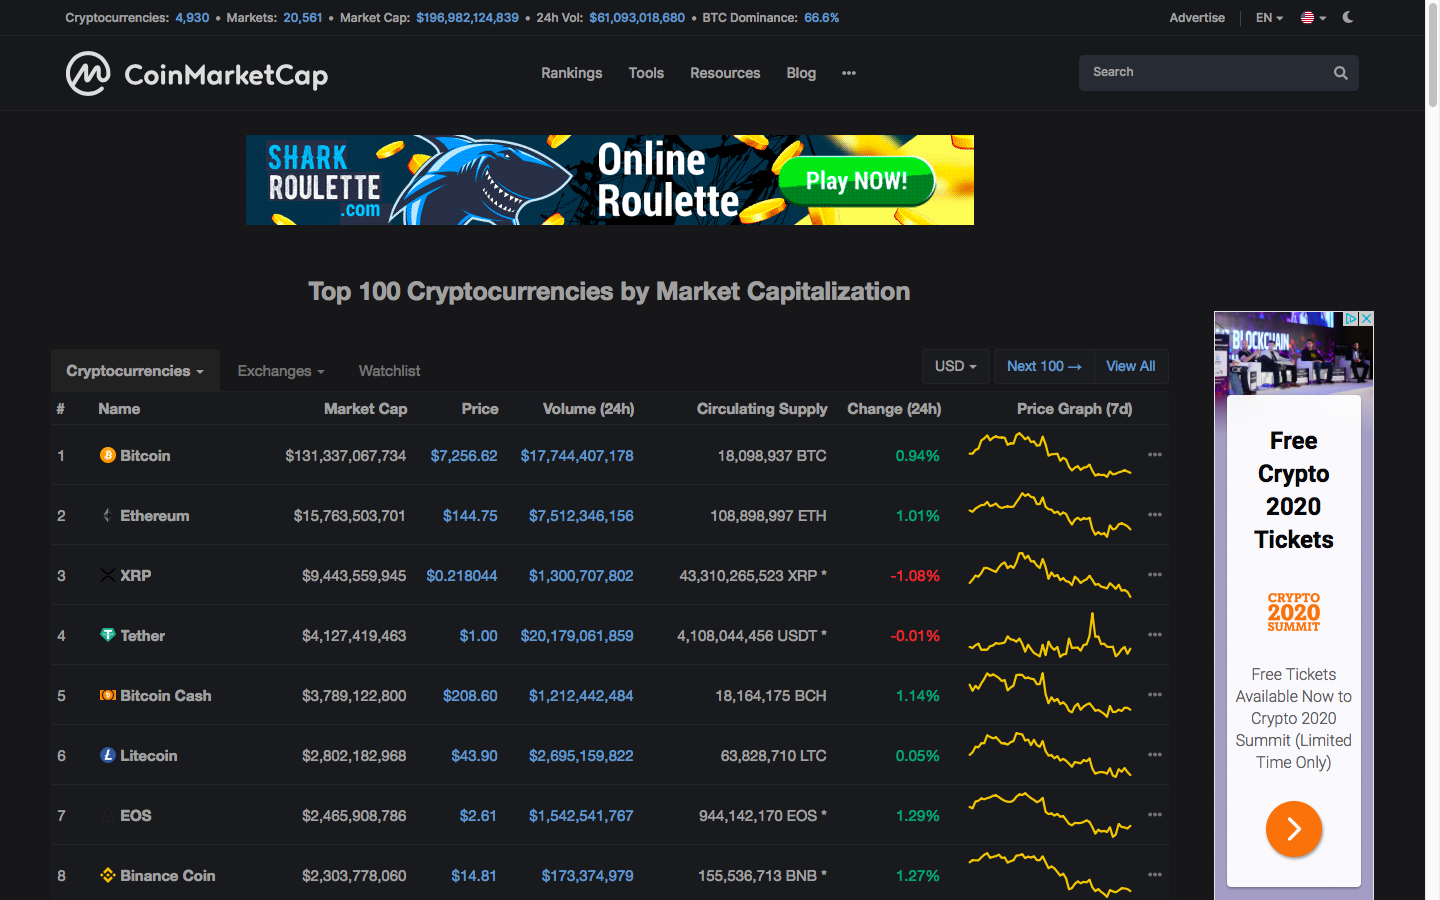 CoinMarketCap website